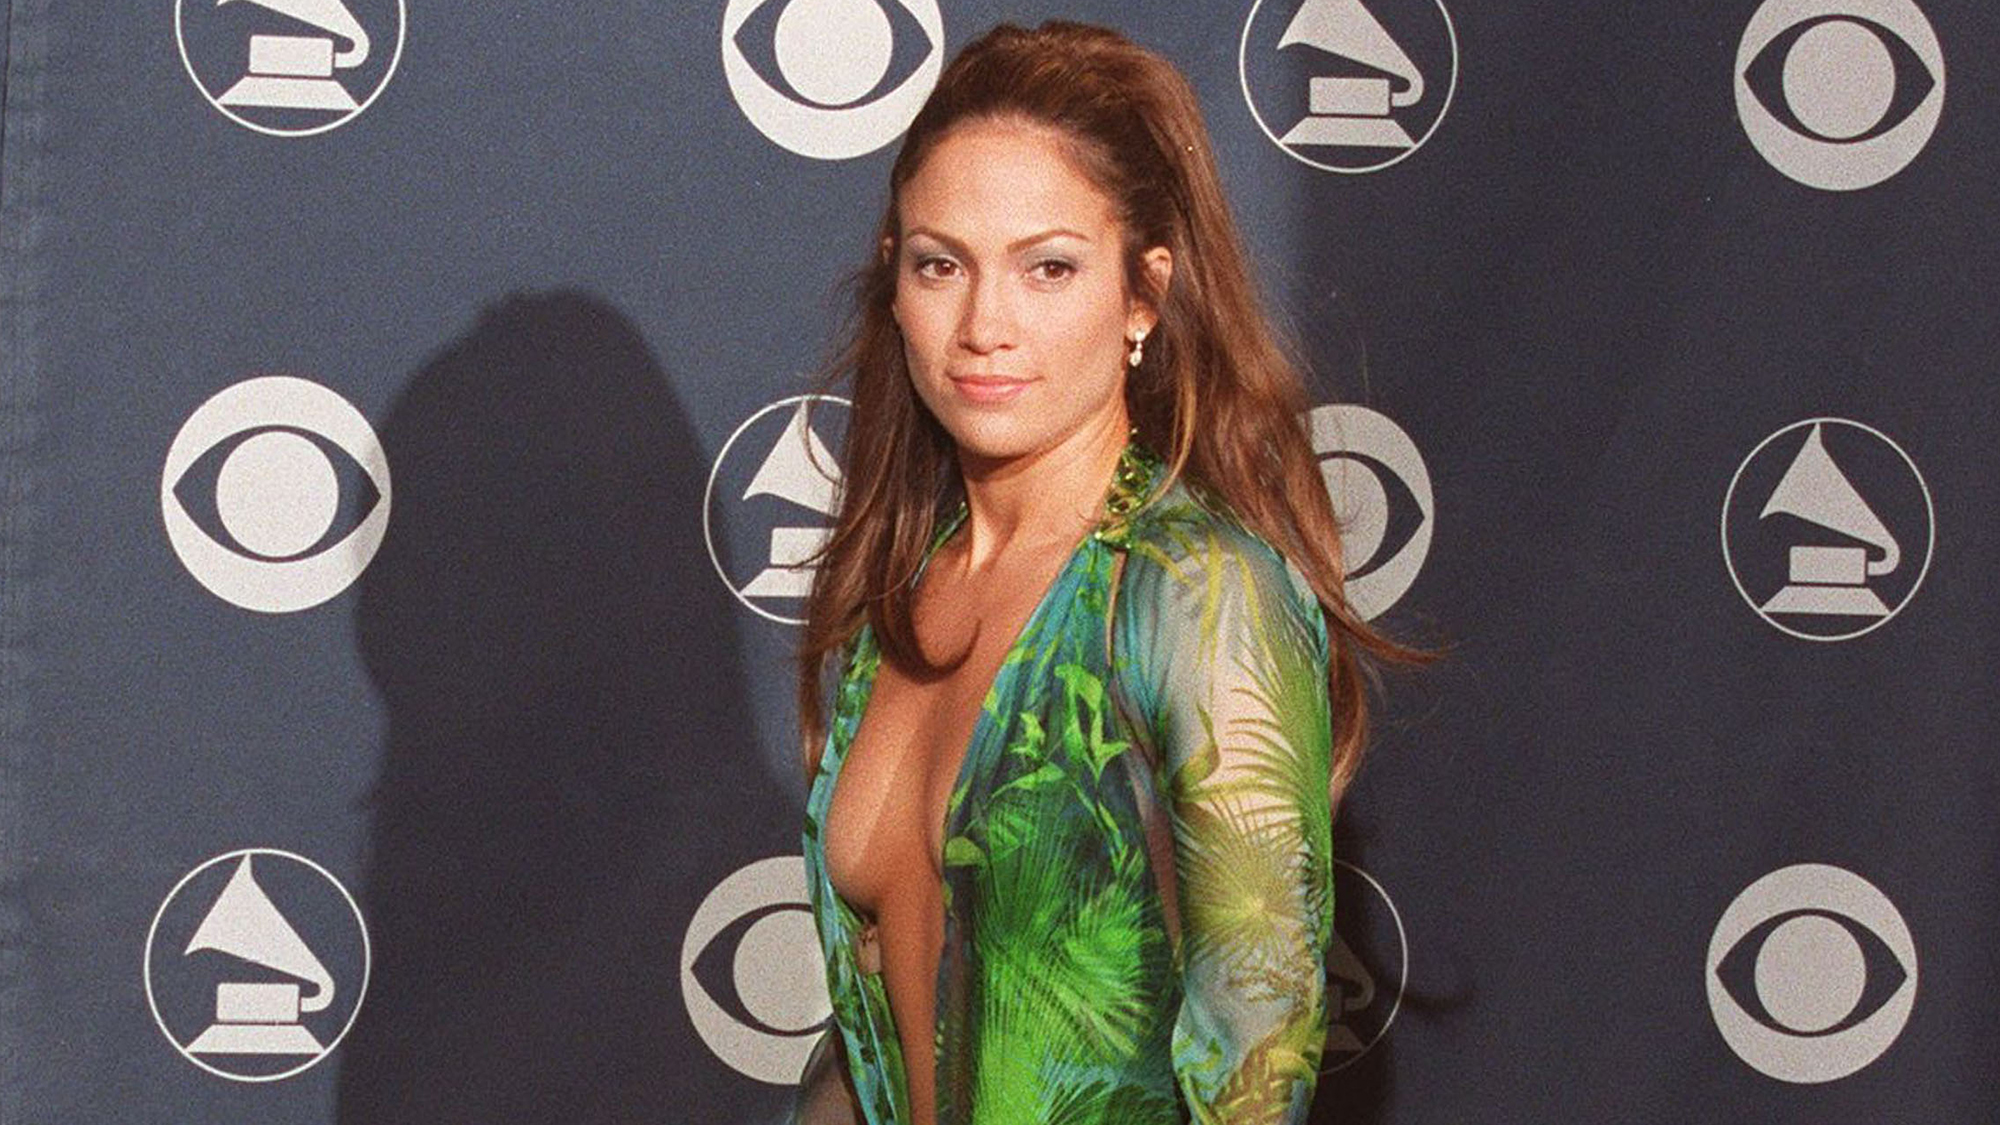 Here S Where You Can Buy J Lo S Iconic Grammys Dress For 163 30